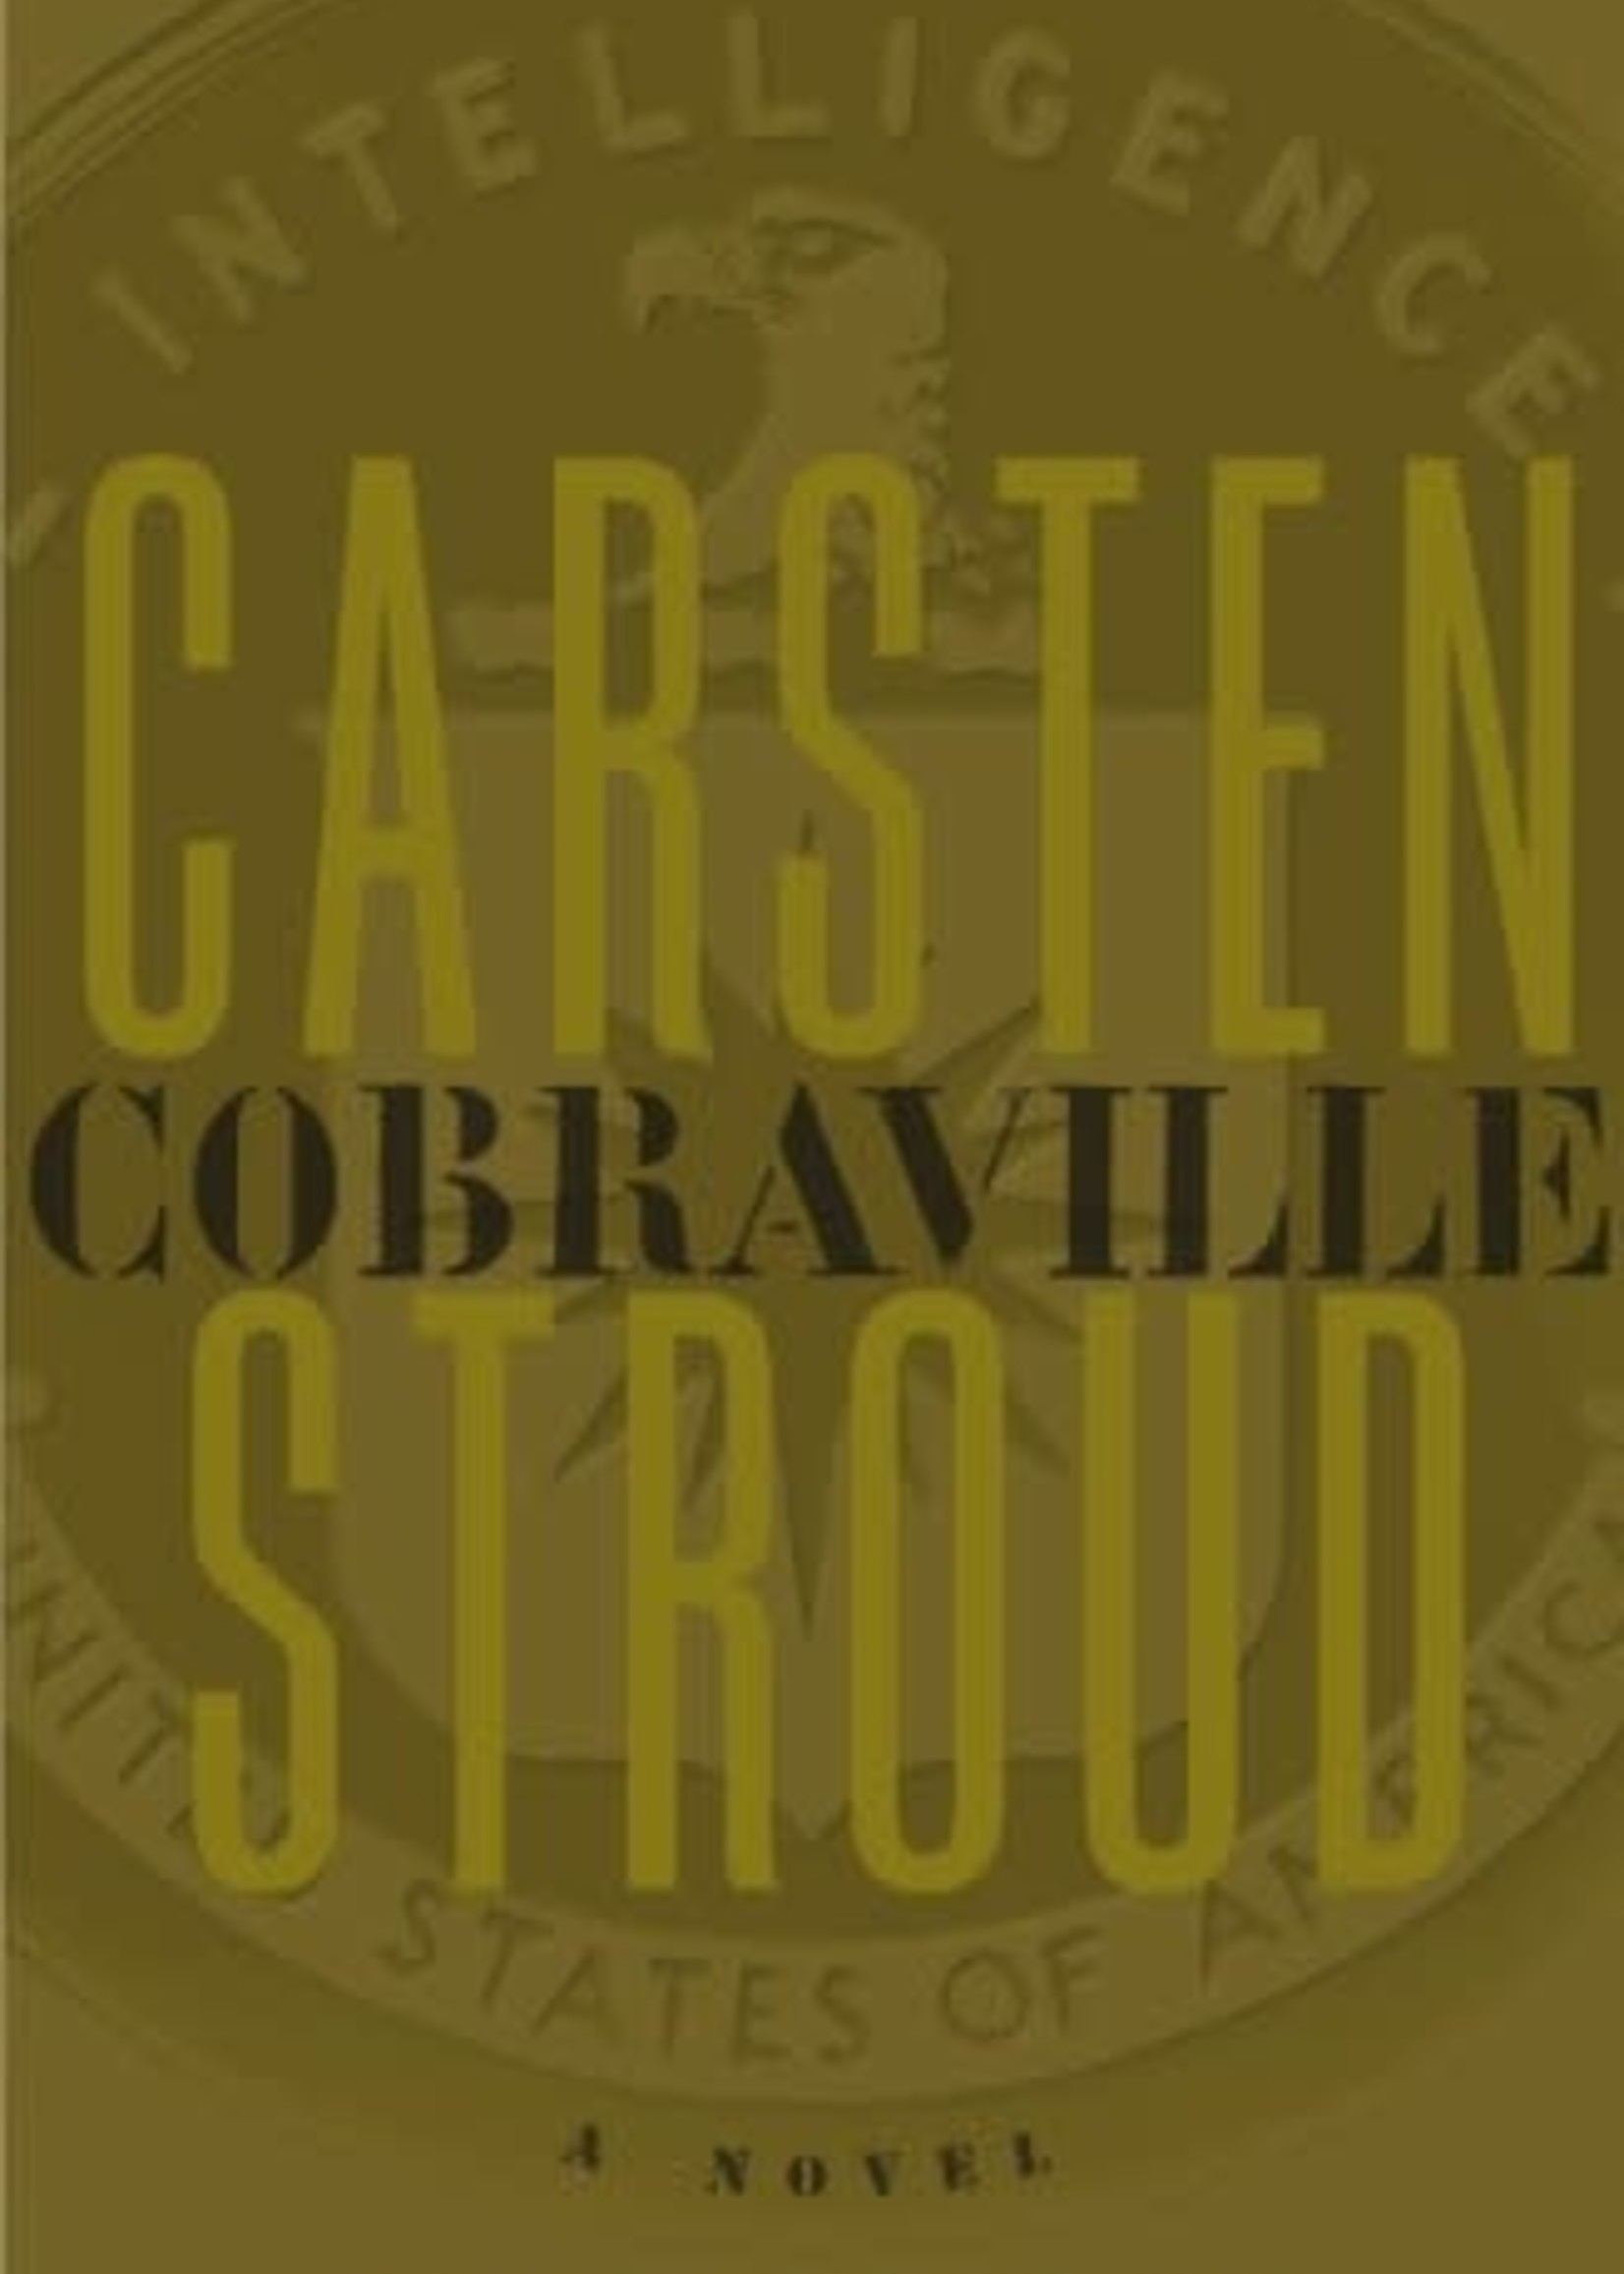 USED - Cobraville by Carsten Stroud